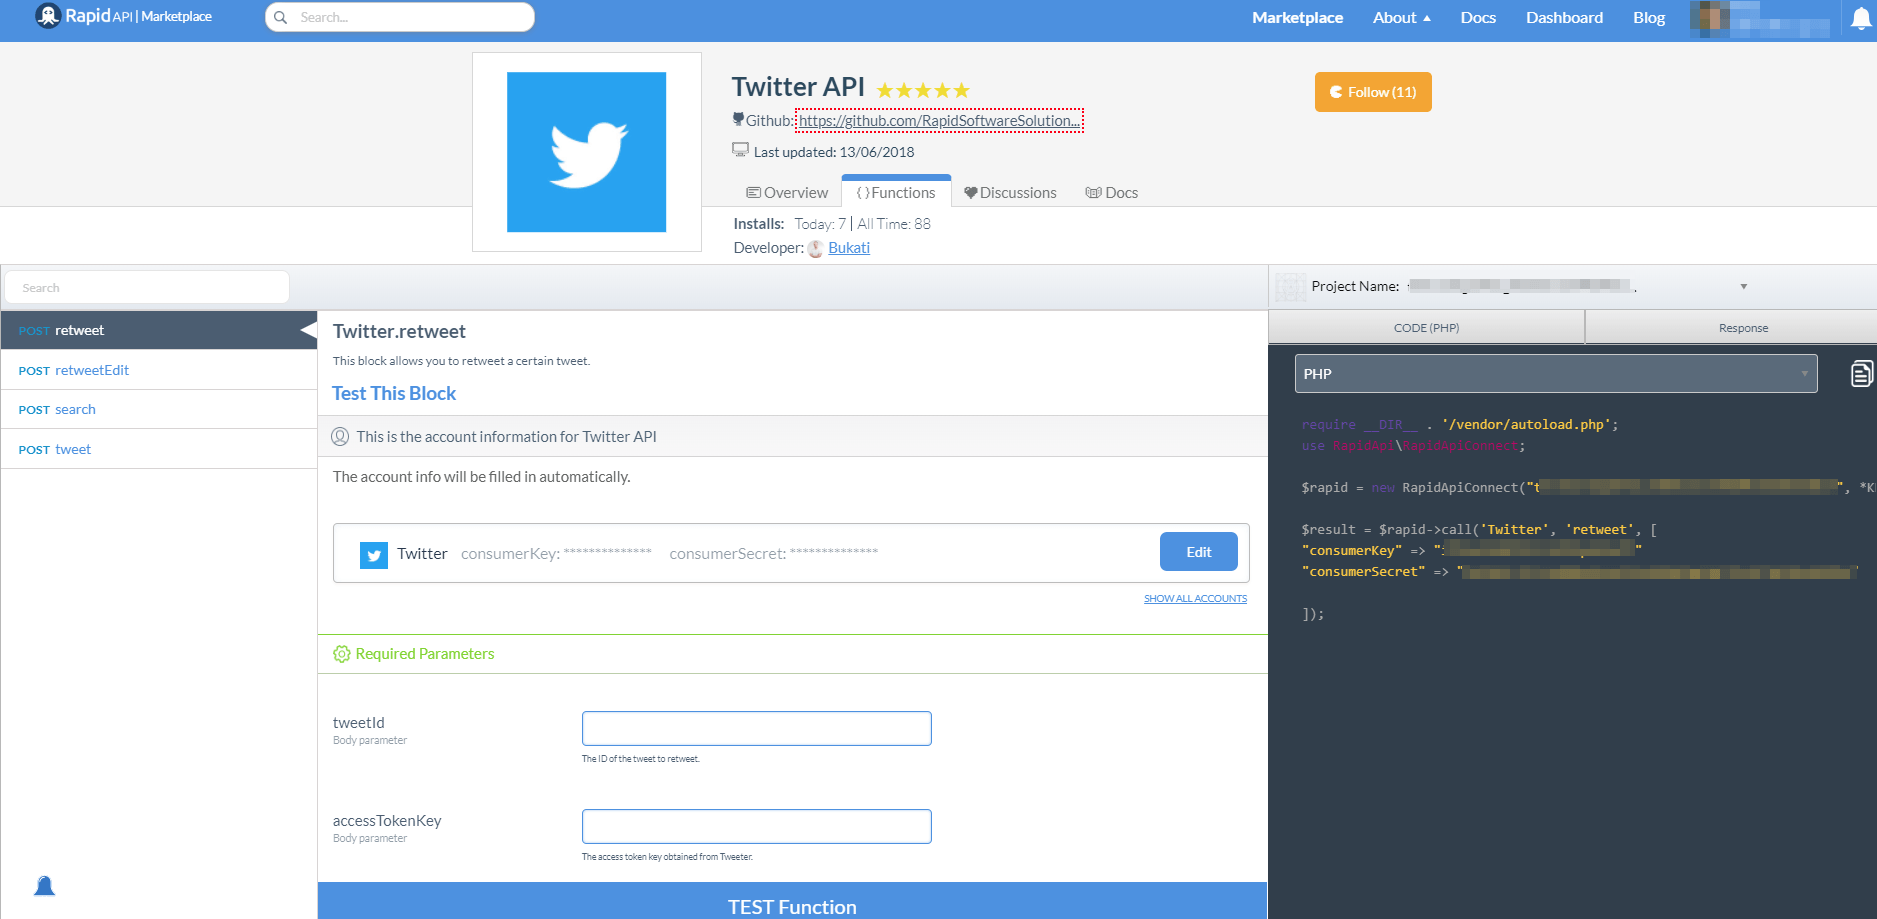 How To Use the Twitter API with PHP [in 4 Easy Steps]